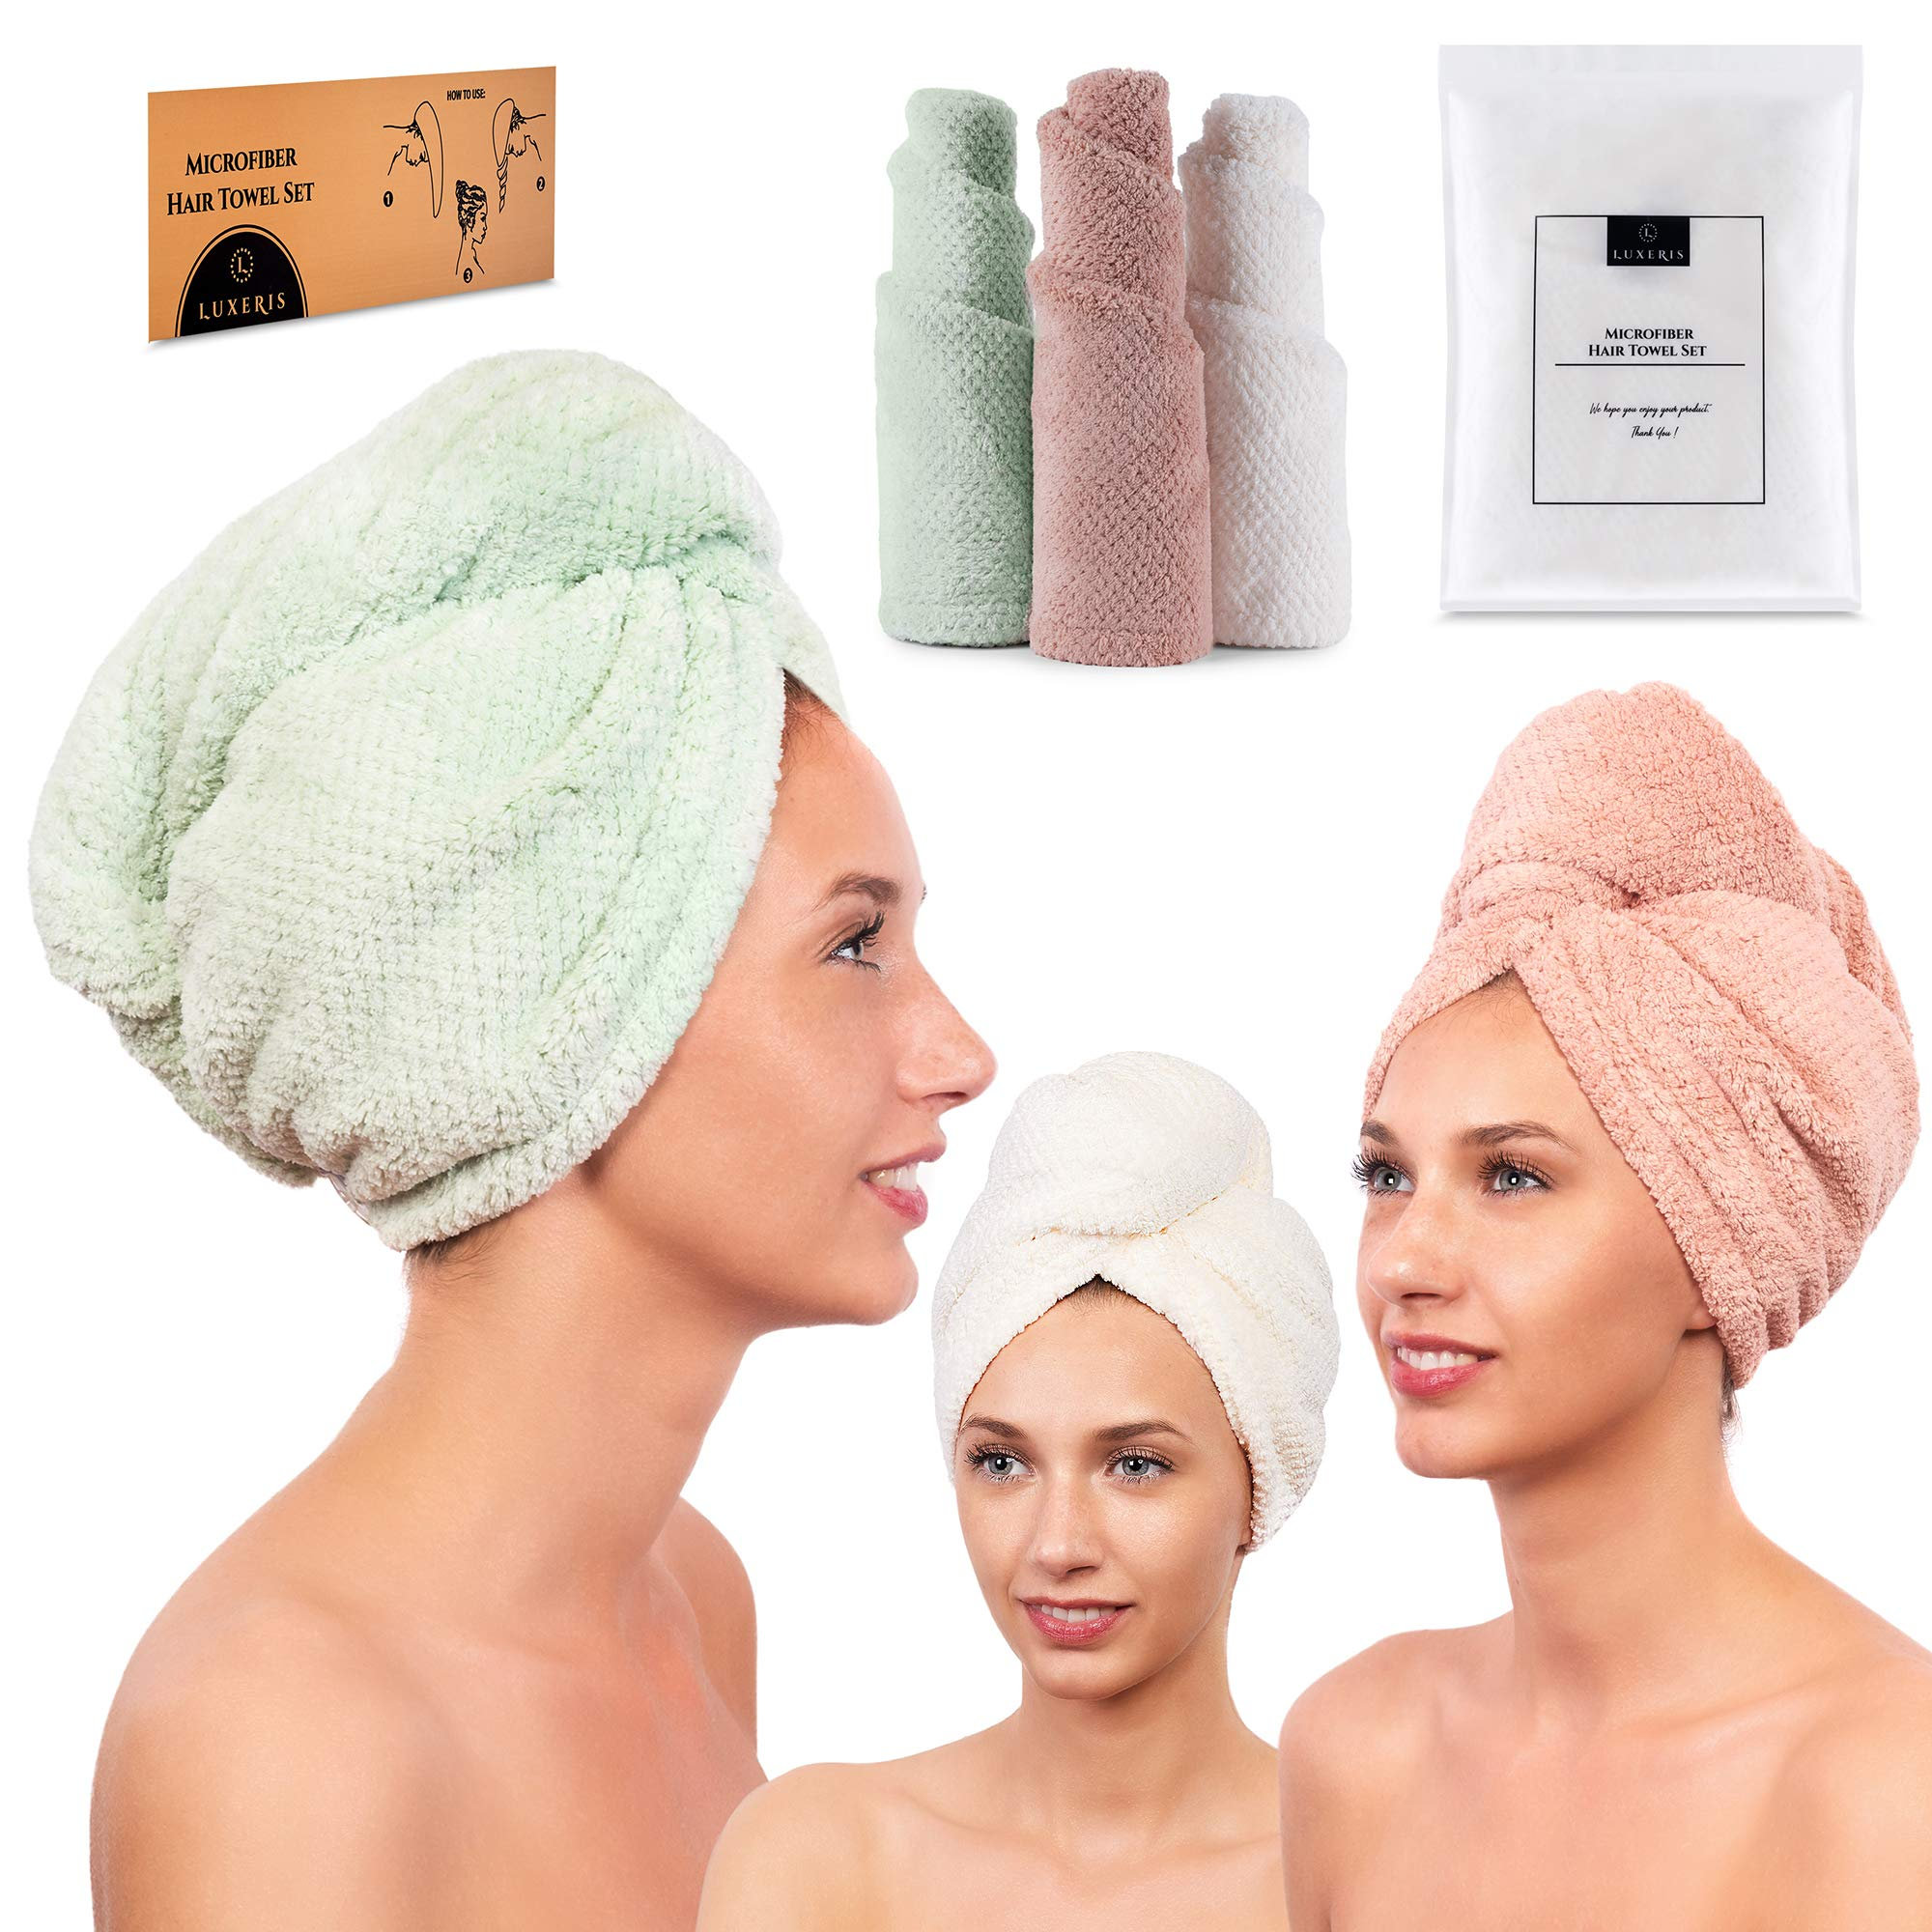 3 Pack Microfiber Hair Towel for Women - Drying Twist Wrap for Curly, Long, Thin or Short Hair – Ultra Absorbent & Anti Frizz Turban for Sleeping and Showering – BONUS Soft Headband (Ivory/Pink/Green)